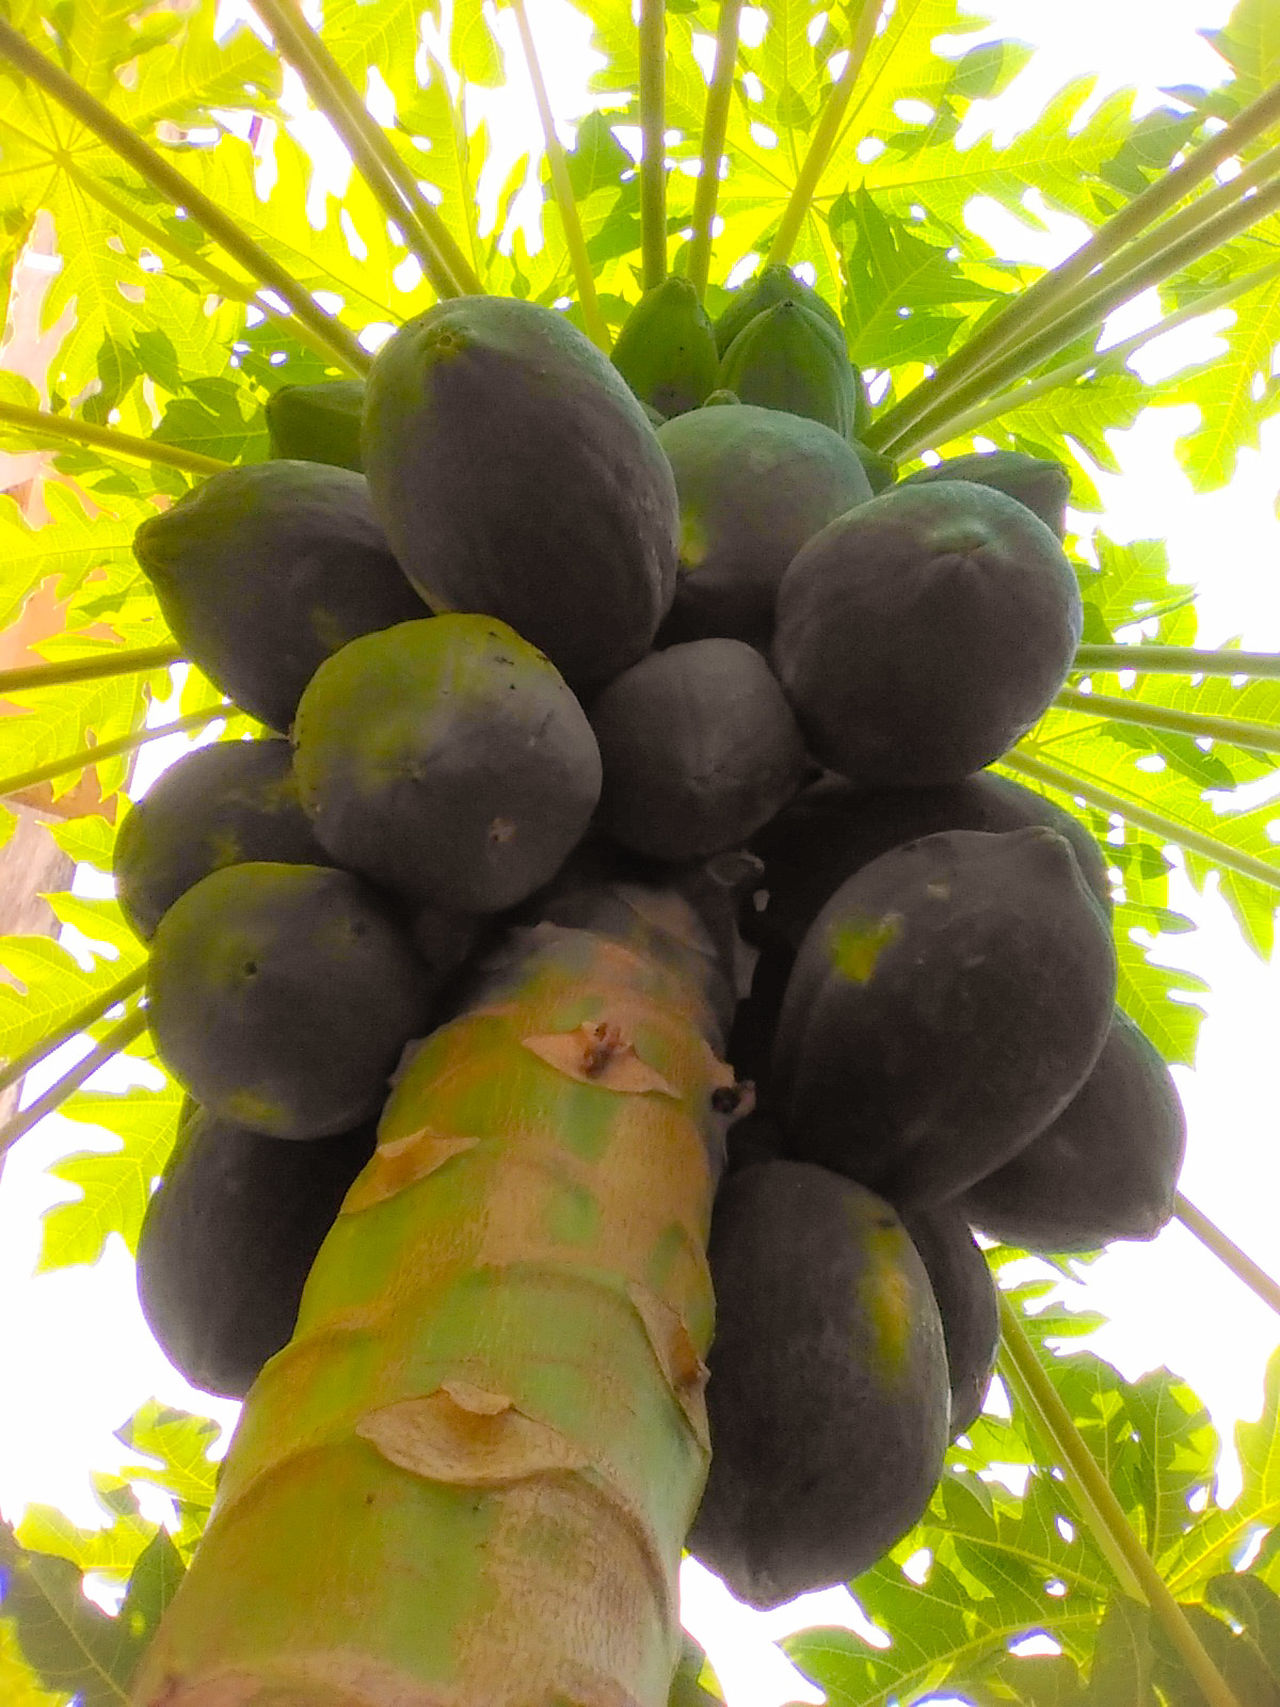 Colours Colorful Fruits Lover Fruits Fruits And Vegetables Trees Tree Papayatree Papaya Salad Papaya_tree Papaya_tree Papayas Papaya Papayasalad Papay Green Green Green!  Green Greenery Green Leaves Green Nature